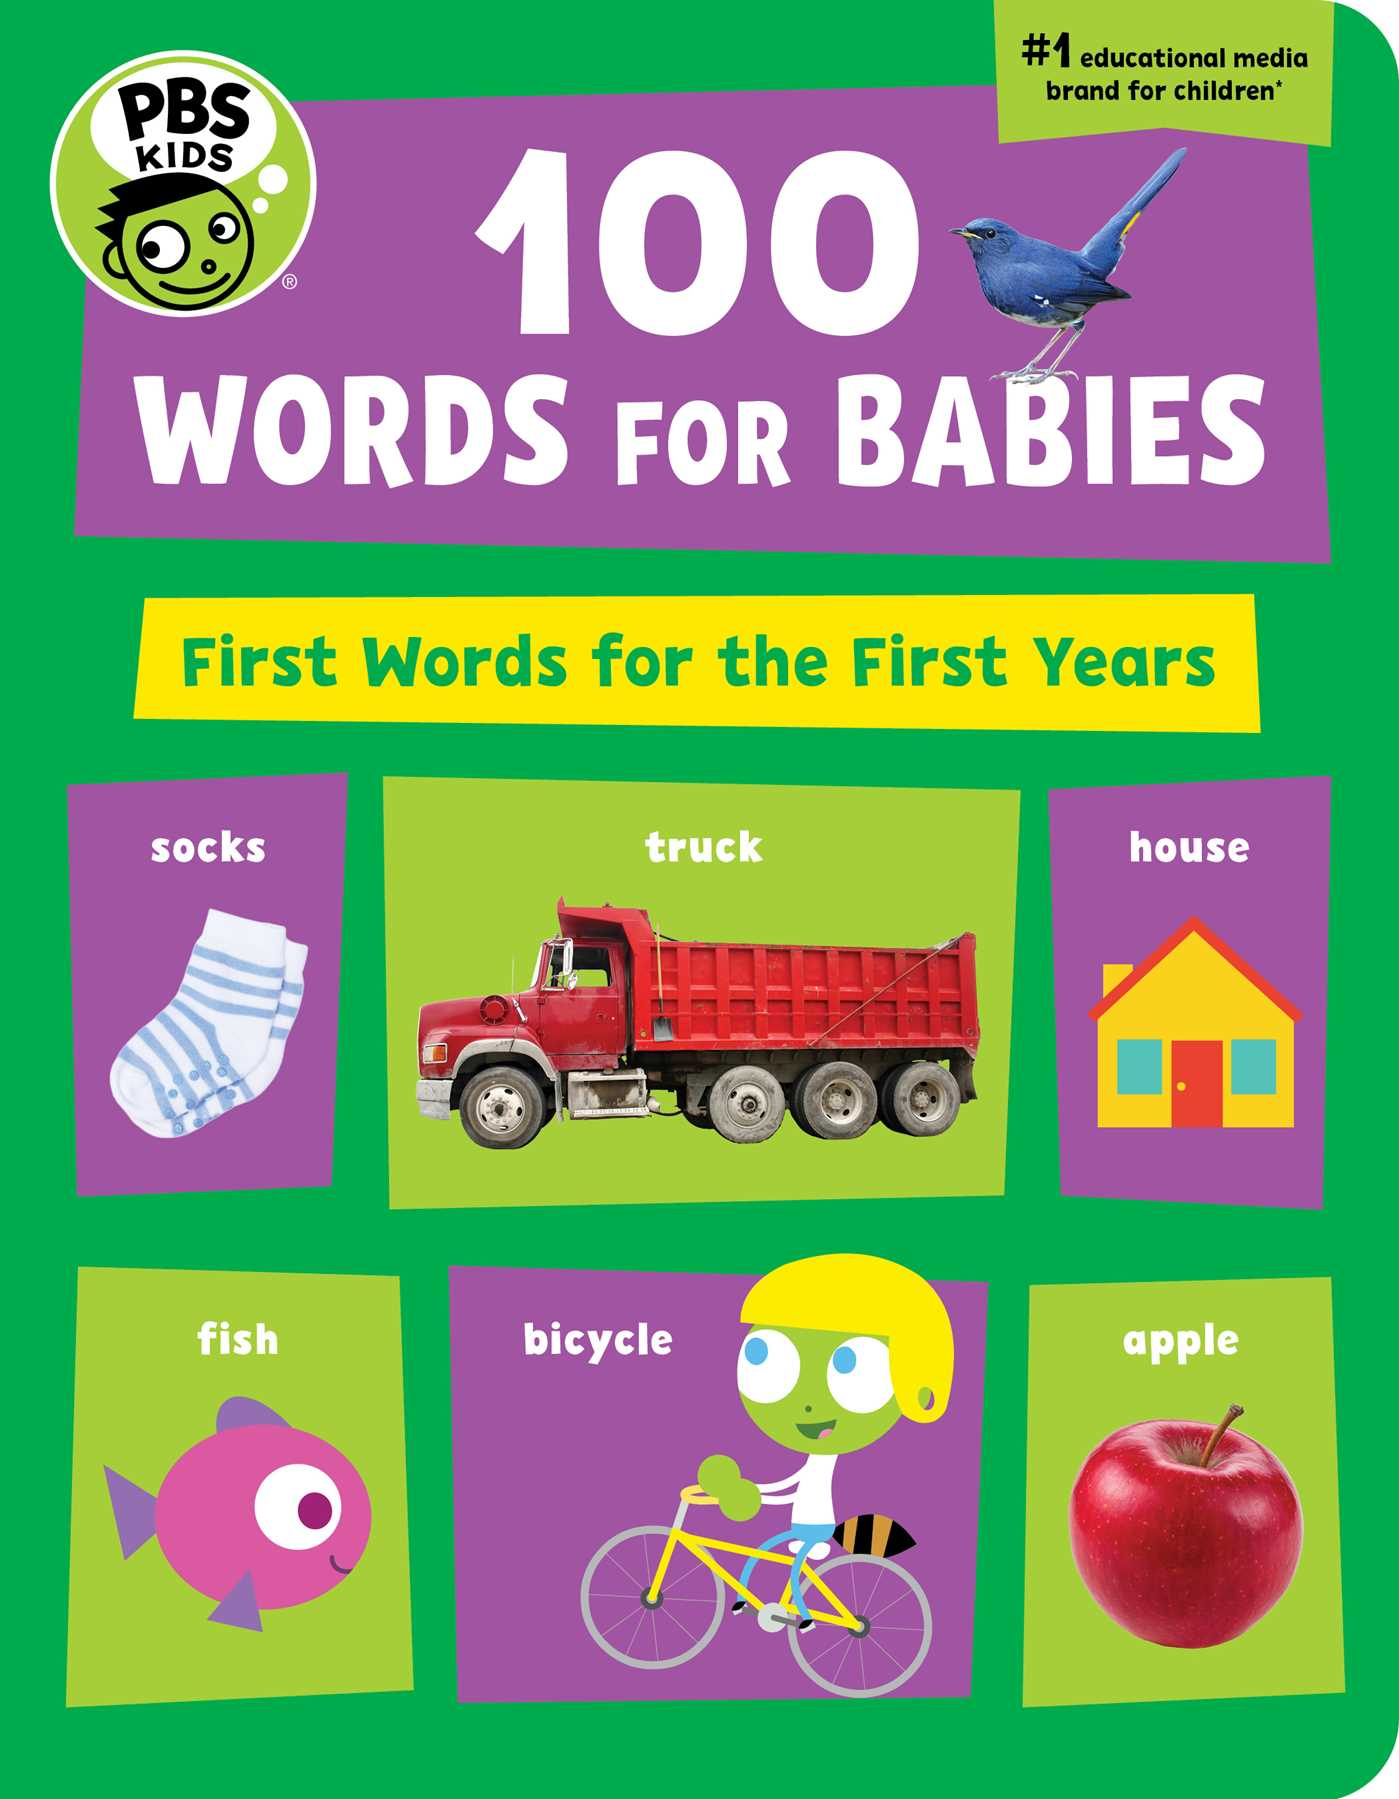 pbs kids 100 words for babies book by the early childhood experts